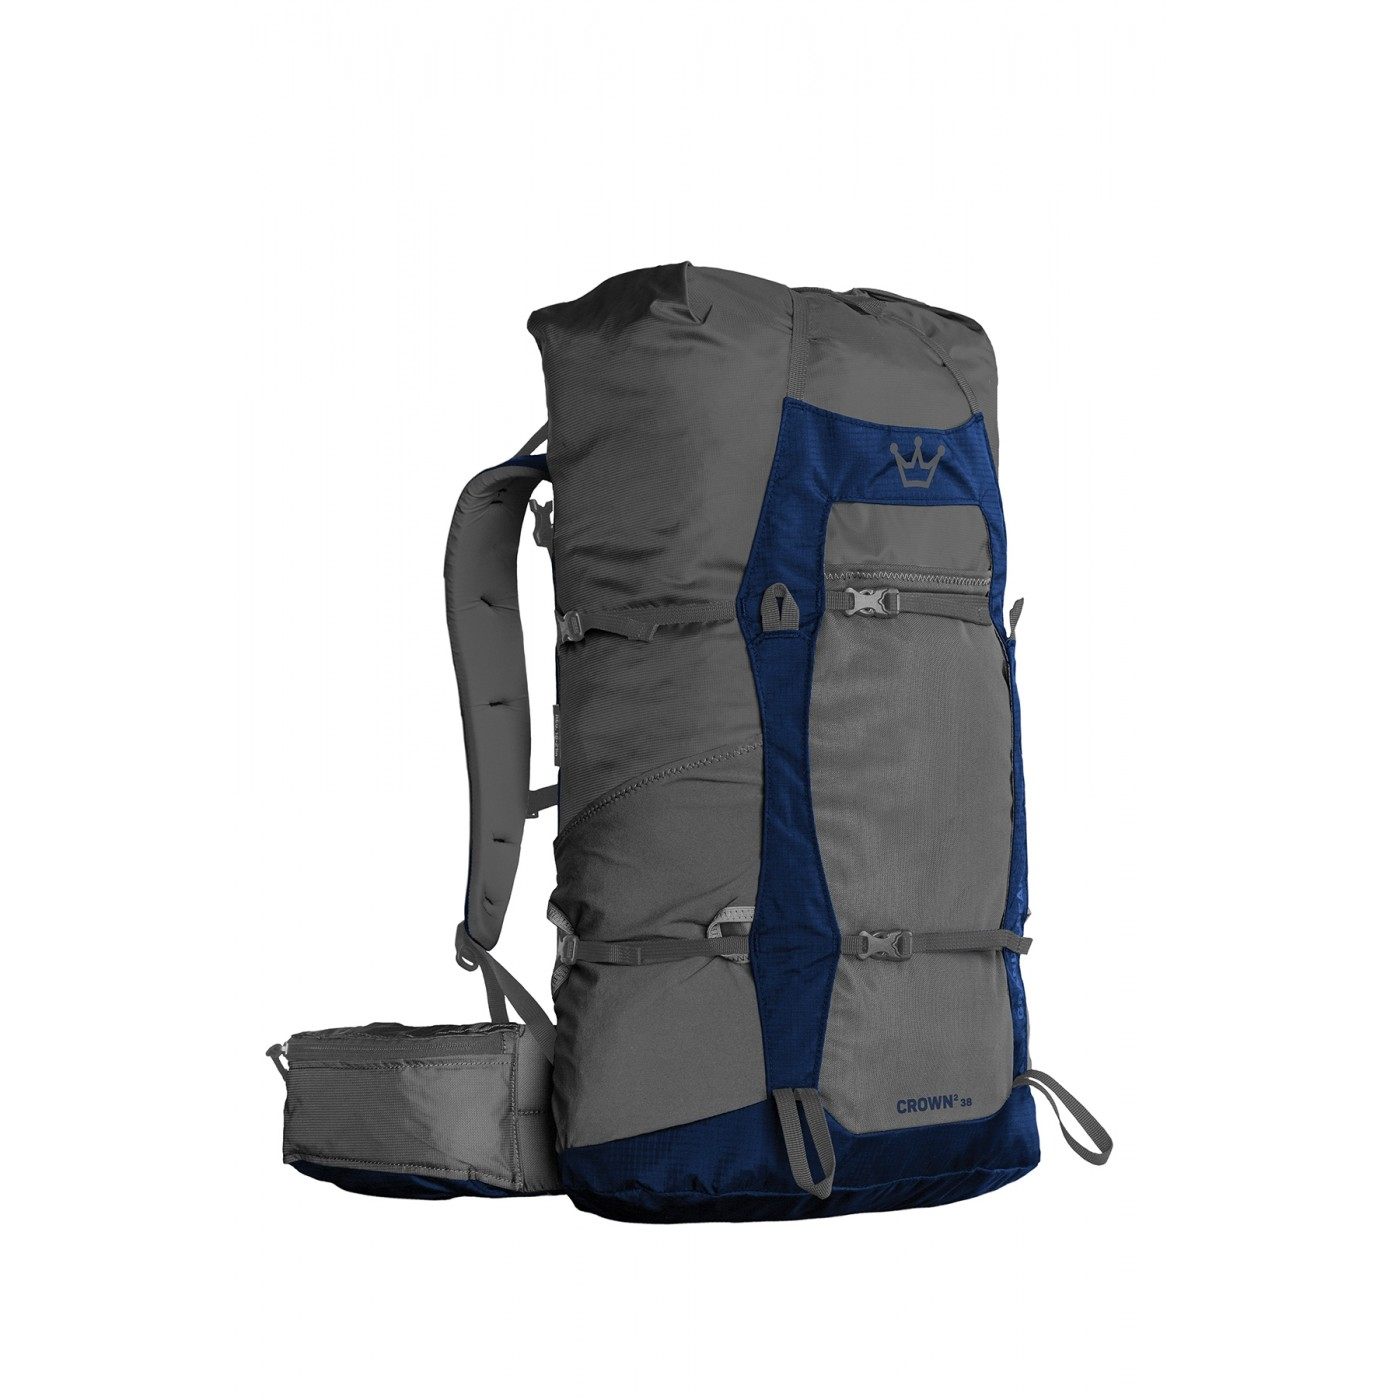 Crown2 38 | Multi-Day Backpacks | Granite Gear